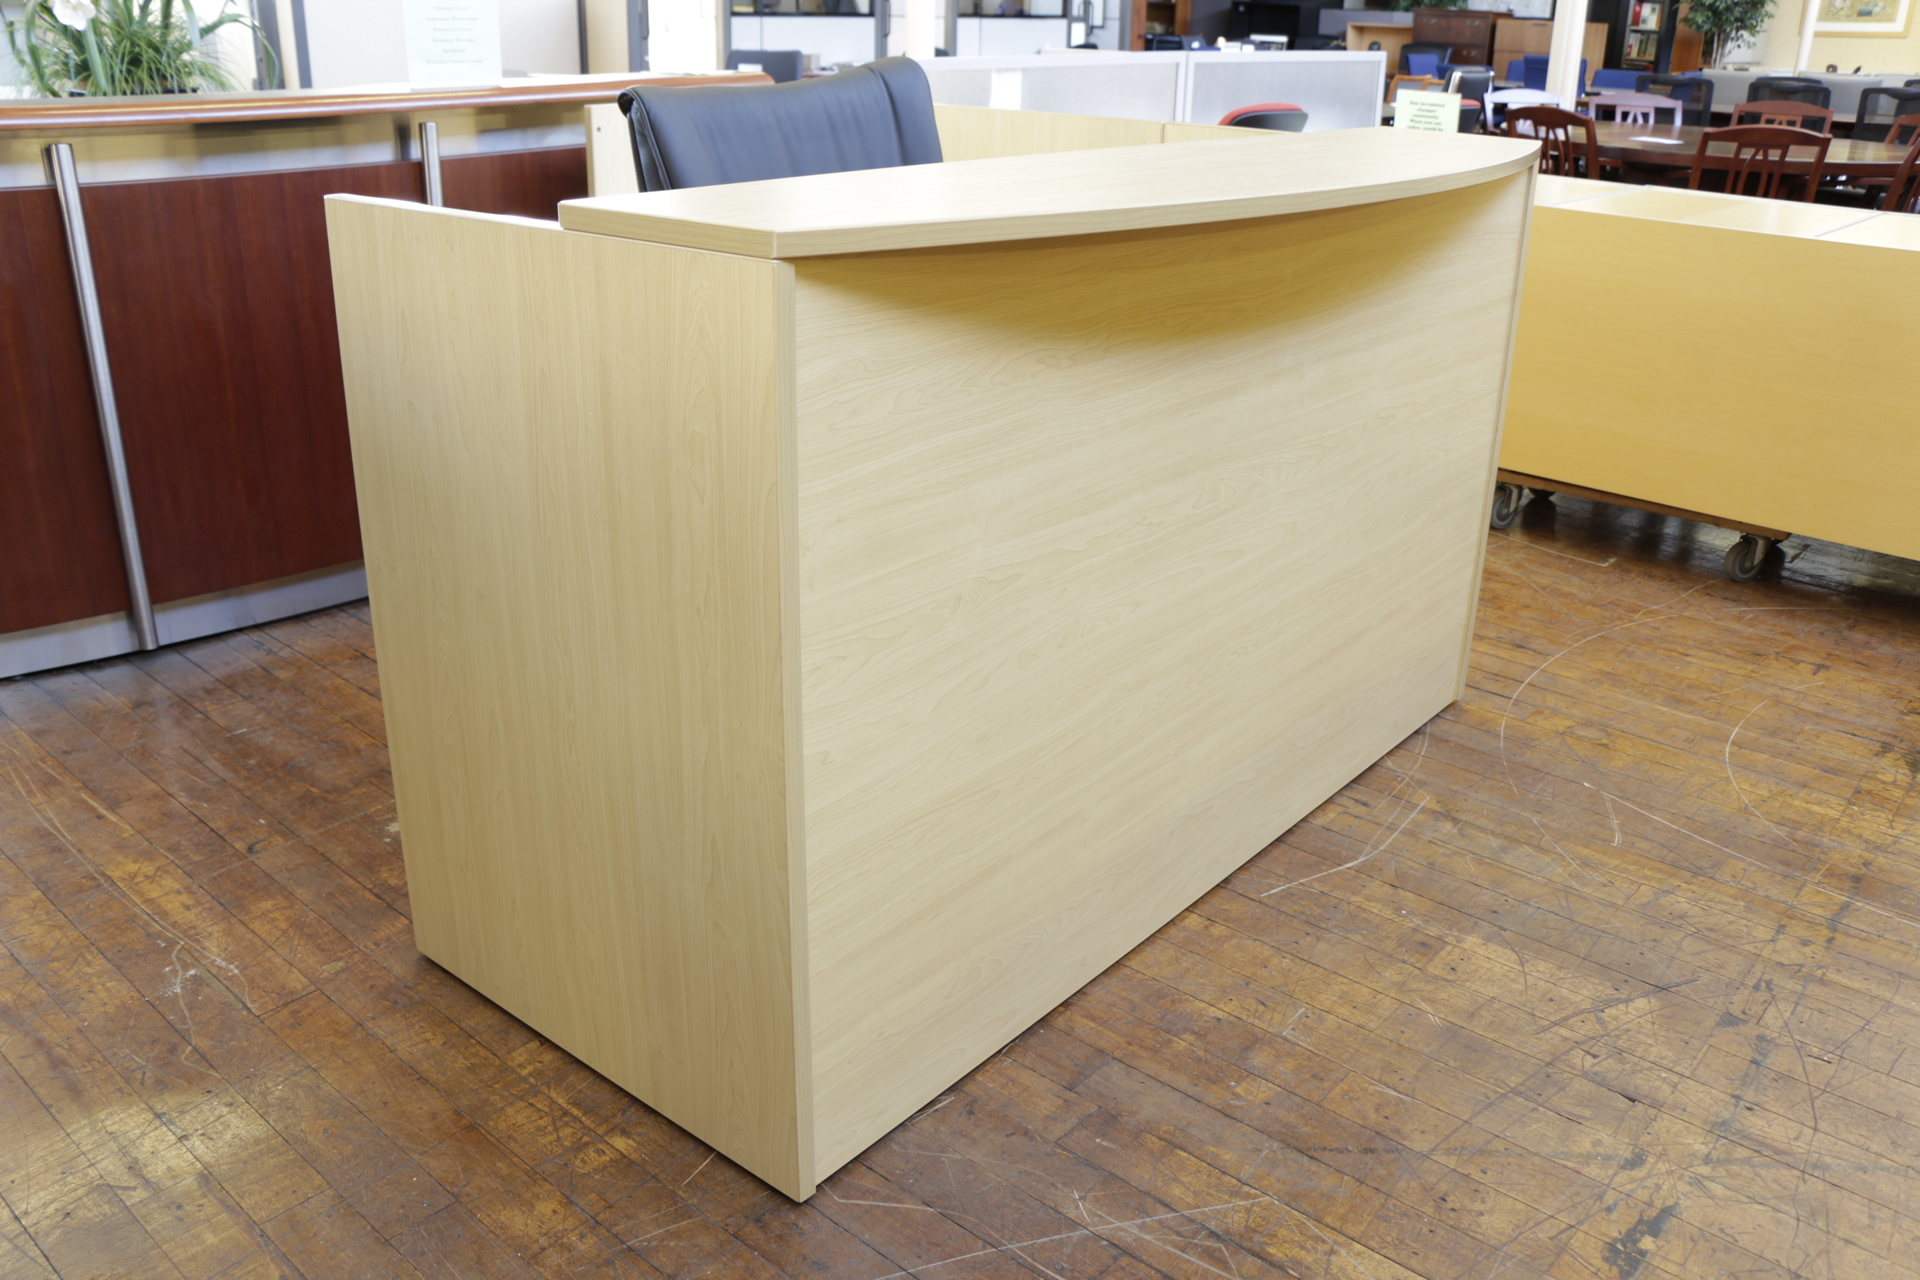 peartreeofficefurniture_peartreeofficefurniture_mg_2123.jpg